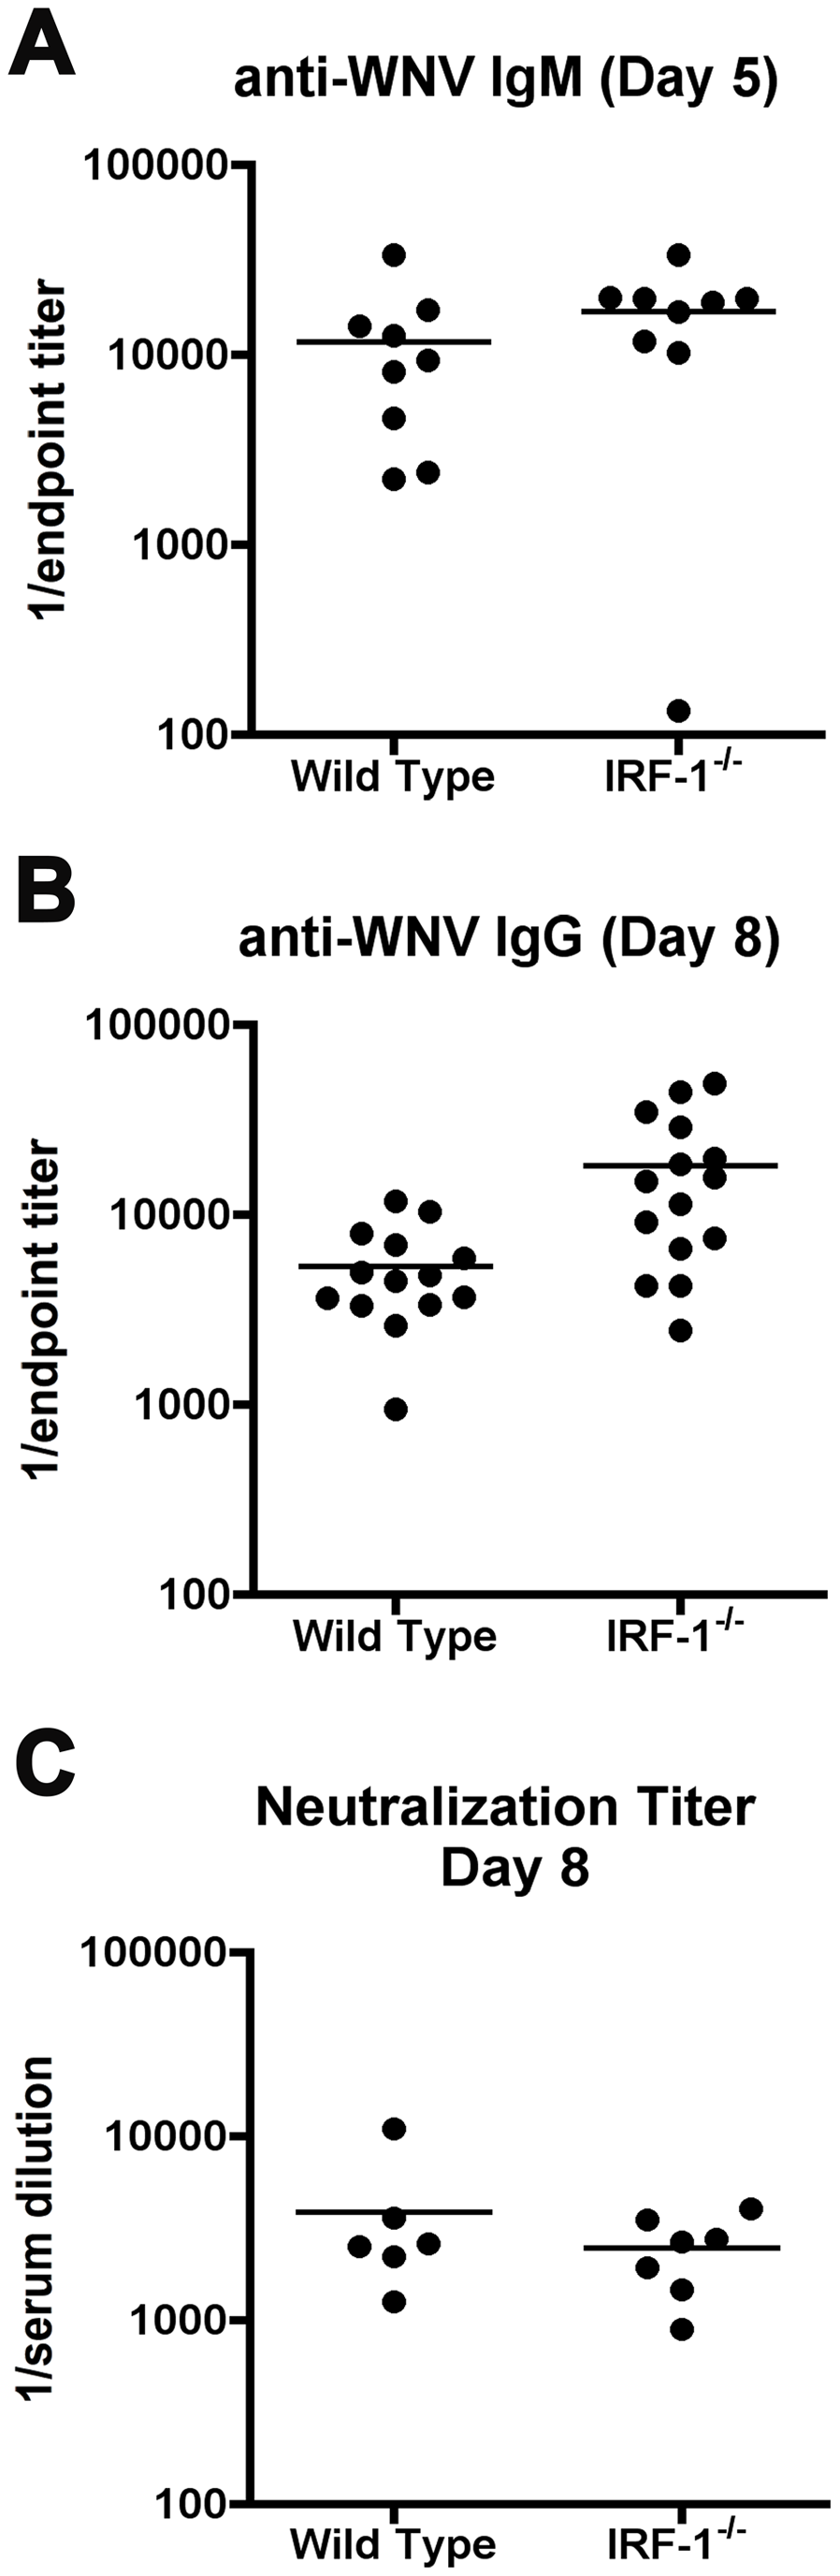 Antibody responses in <i>IRF-1</i><sup>-/-</sup> mice remain intact after WNV infection.